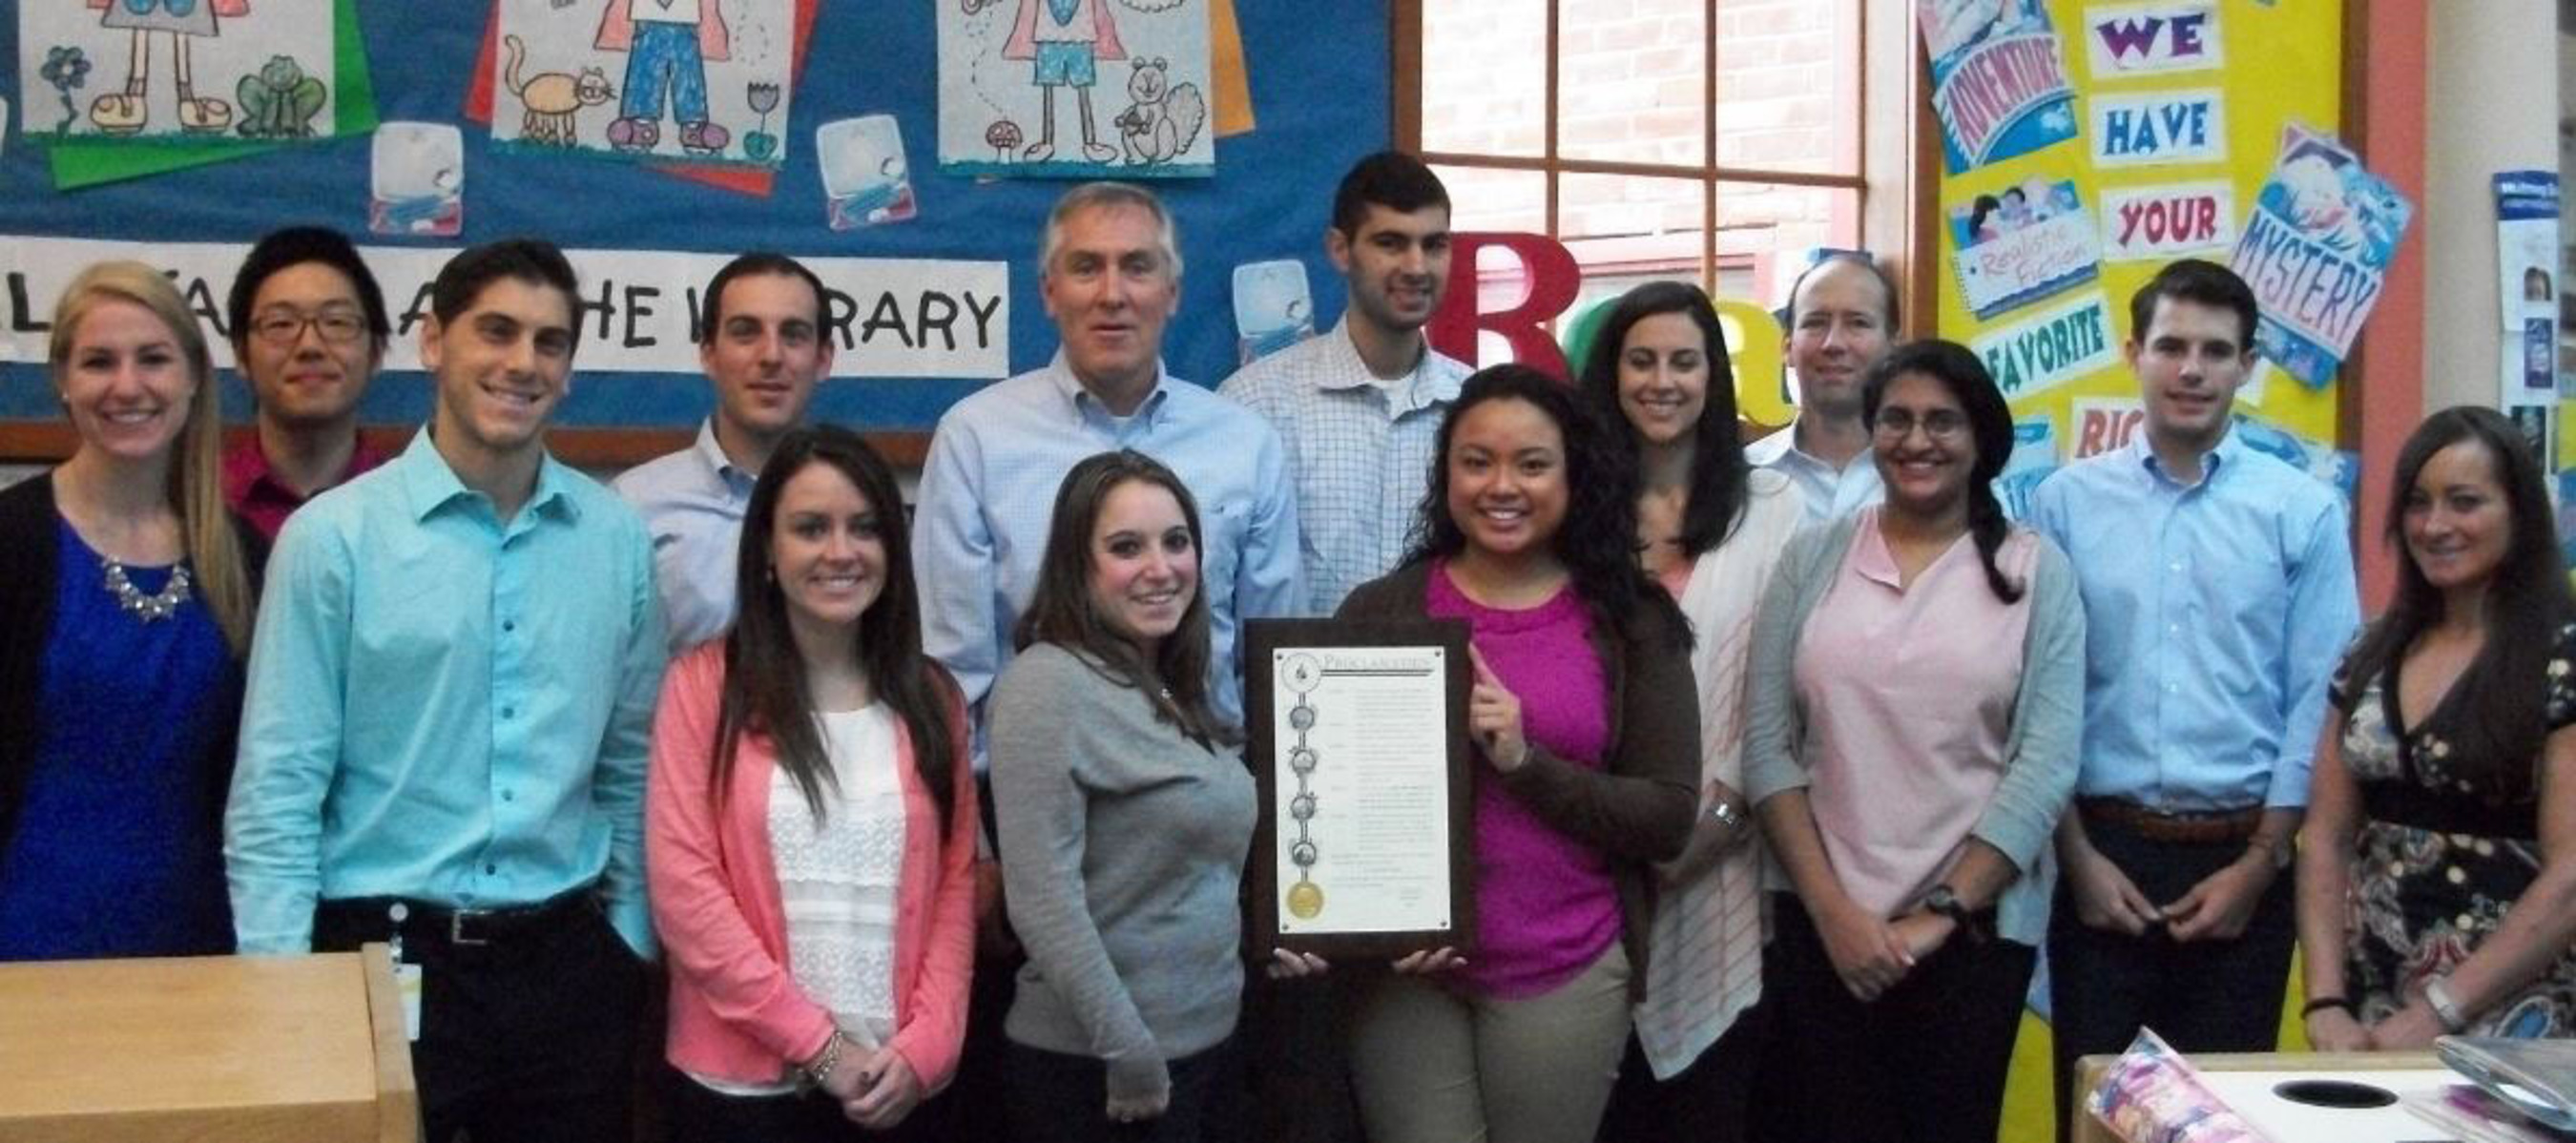 EY Stamford Office Managing Partner, Bud McDonald along with EY professionals volunteering for Junior Achievement